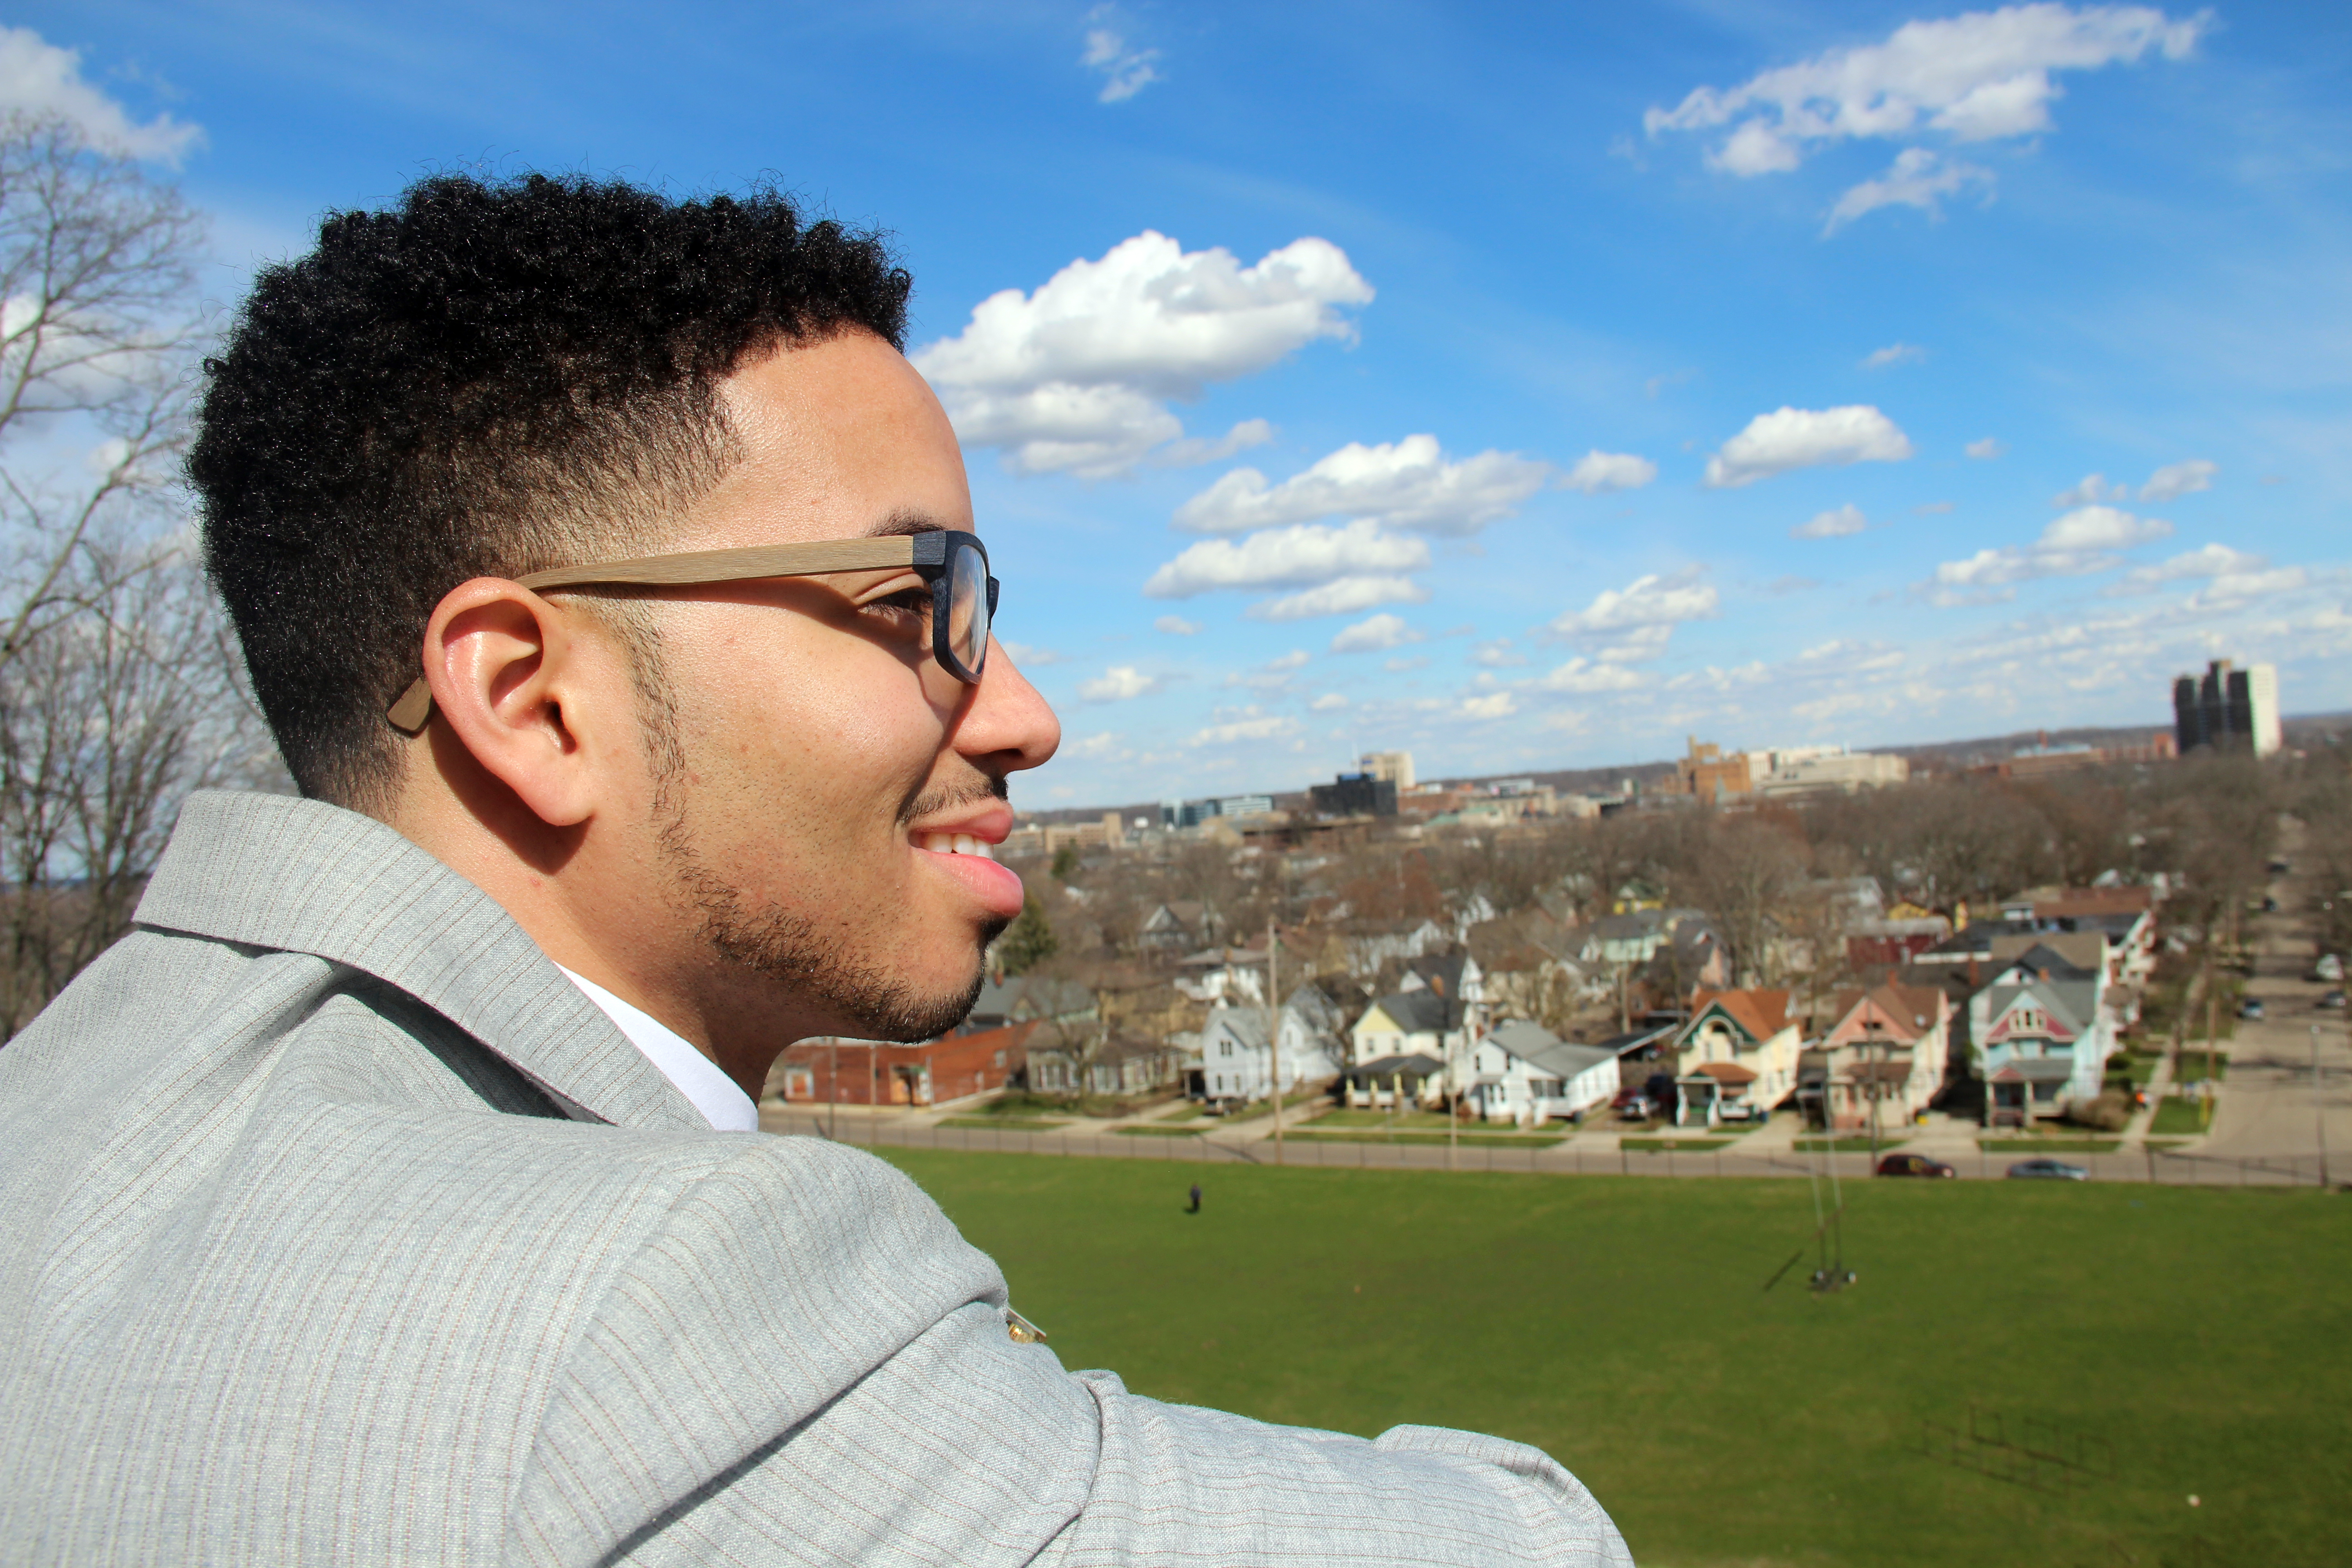 In this photo Javon Dobbs is on the back wall behind Heritage Hall looking out over the Kalamazoo valley The sun shines on his smiling face and the green of the lacross field stretches out below. Behind the field little rows of orderly houses line the streets of the Vine neighborhood.